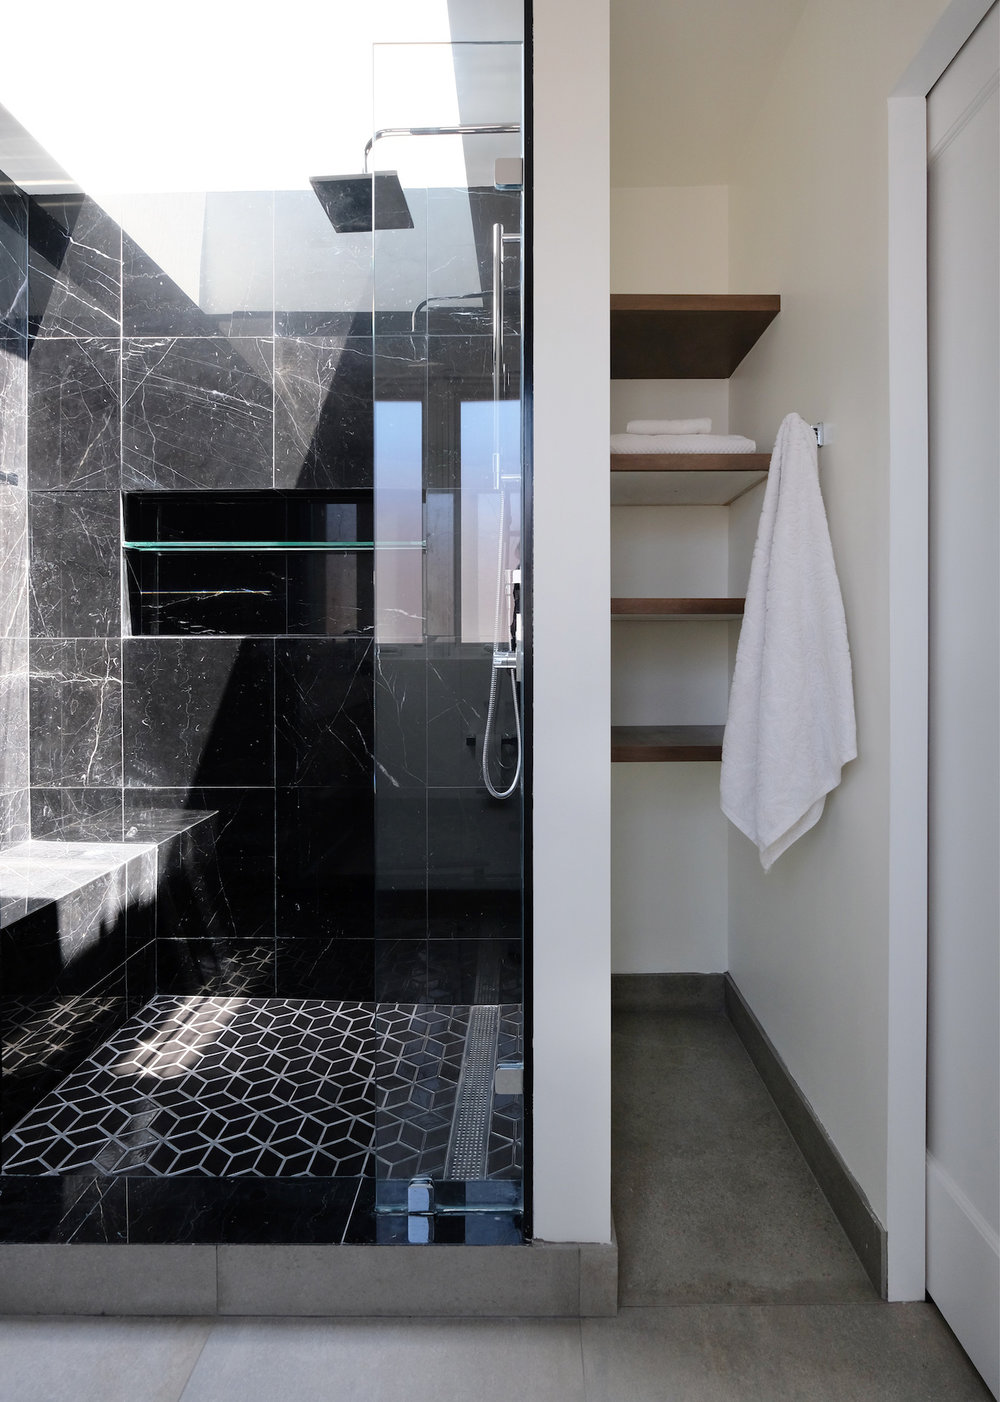 black marble tile shower with bench and chrome fixtures and storage area with custom shelving.jpg